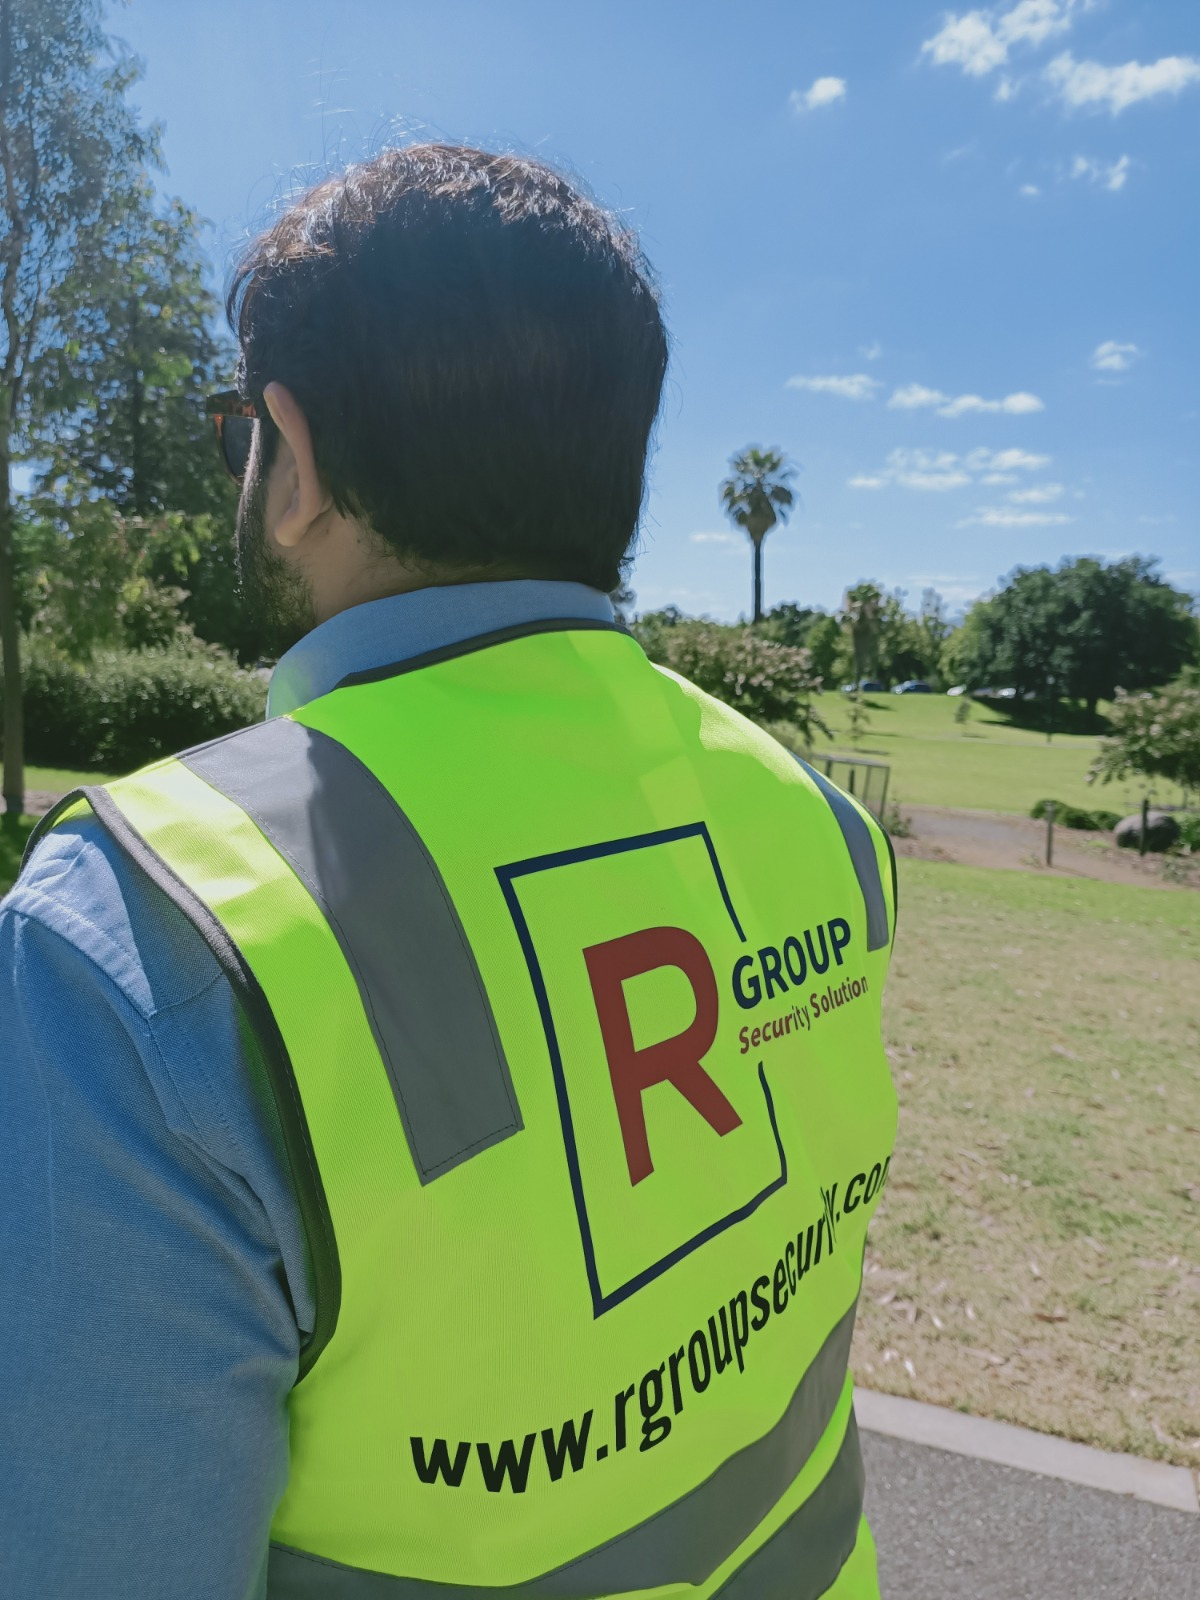 RGroup Security Solution private security guard company in Adelaide south Australia